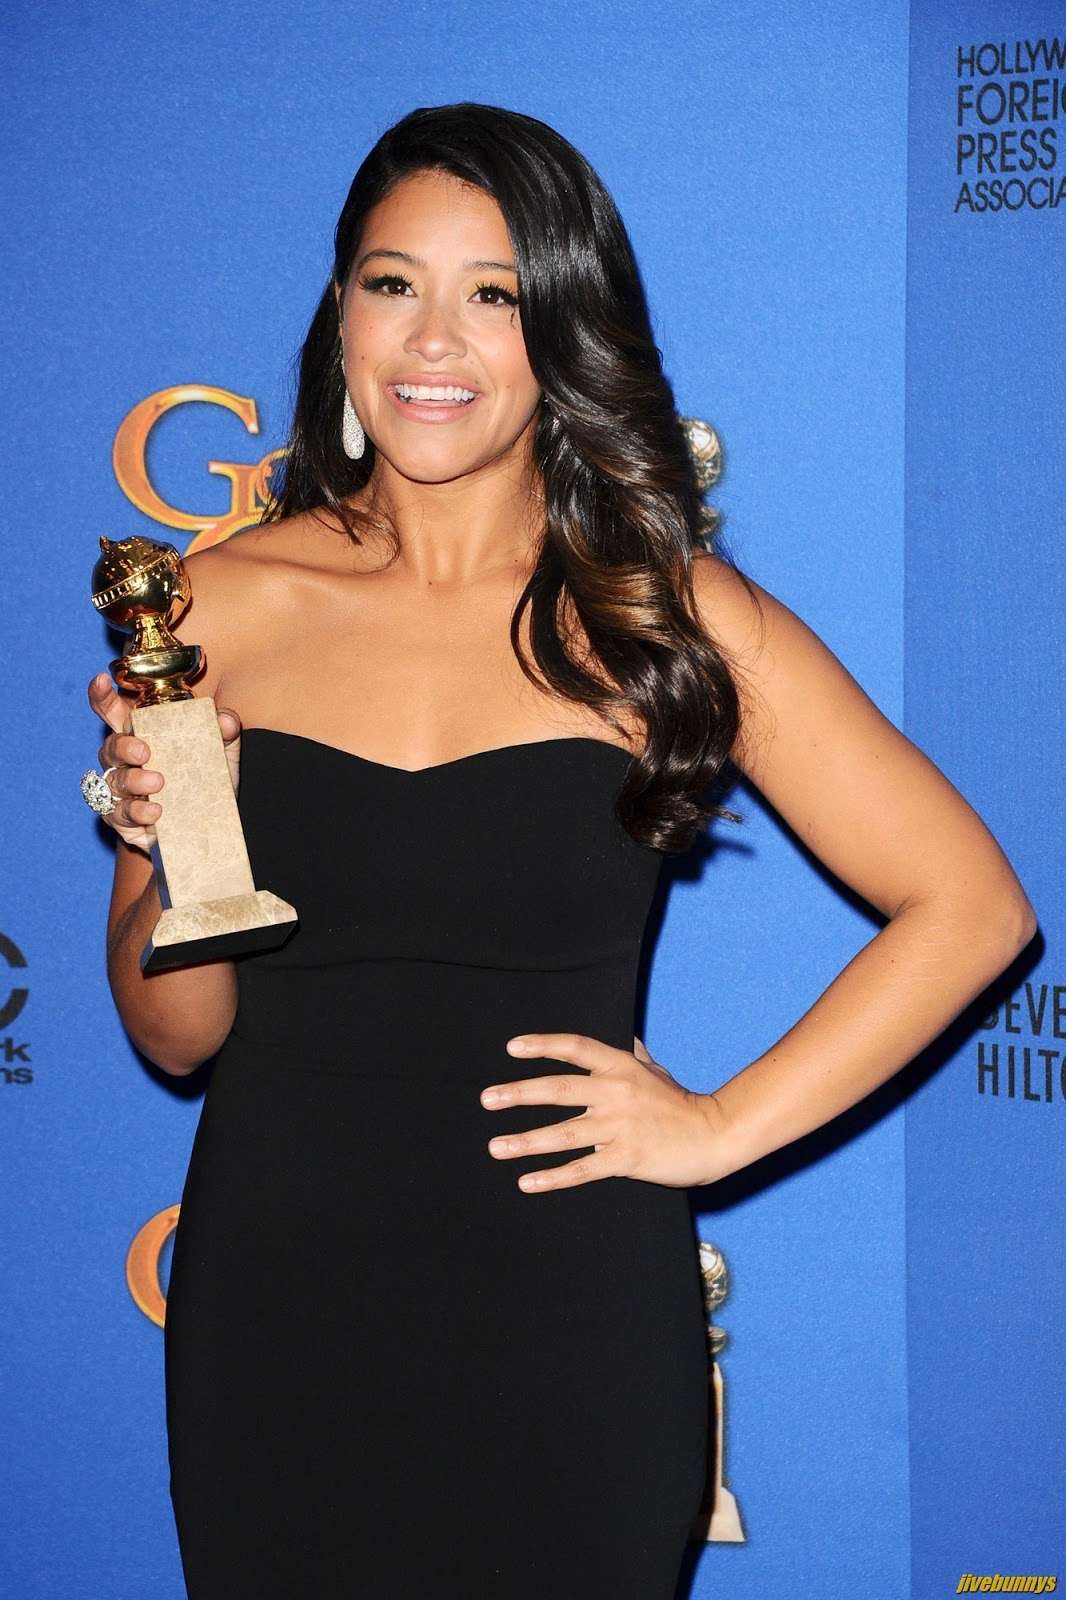 gina rodriguez go for it - photo #28